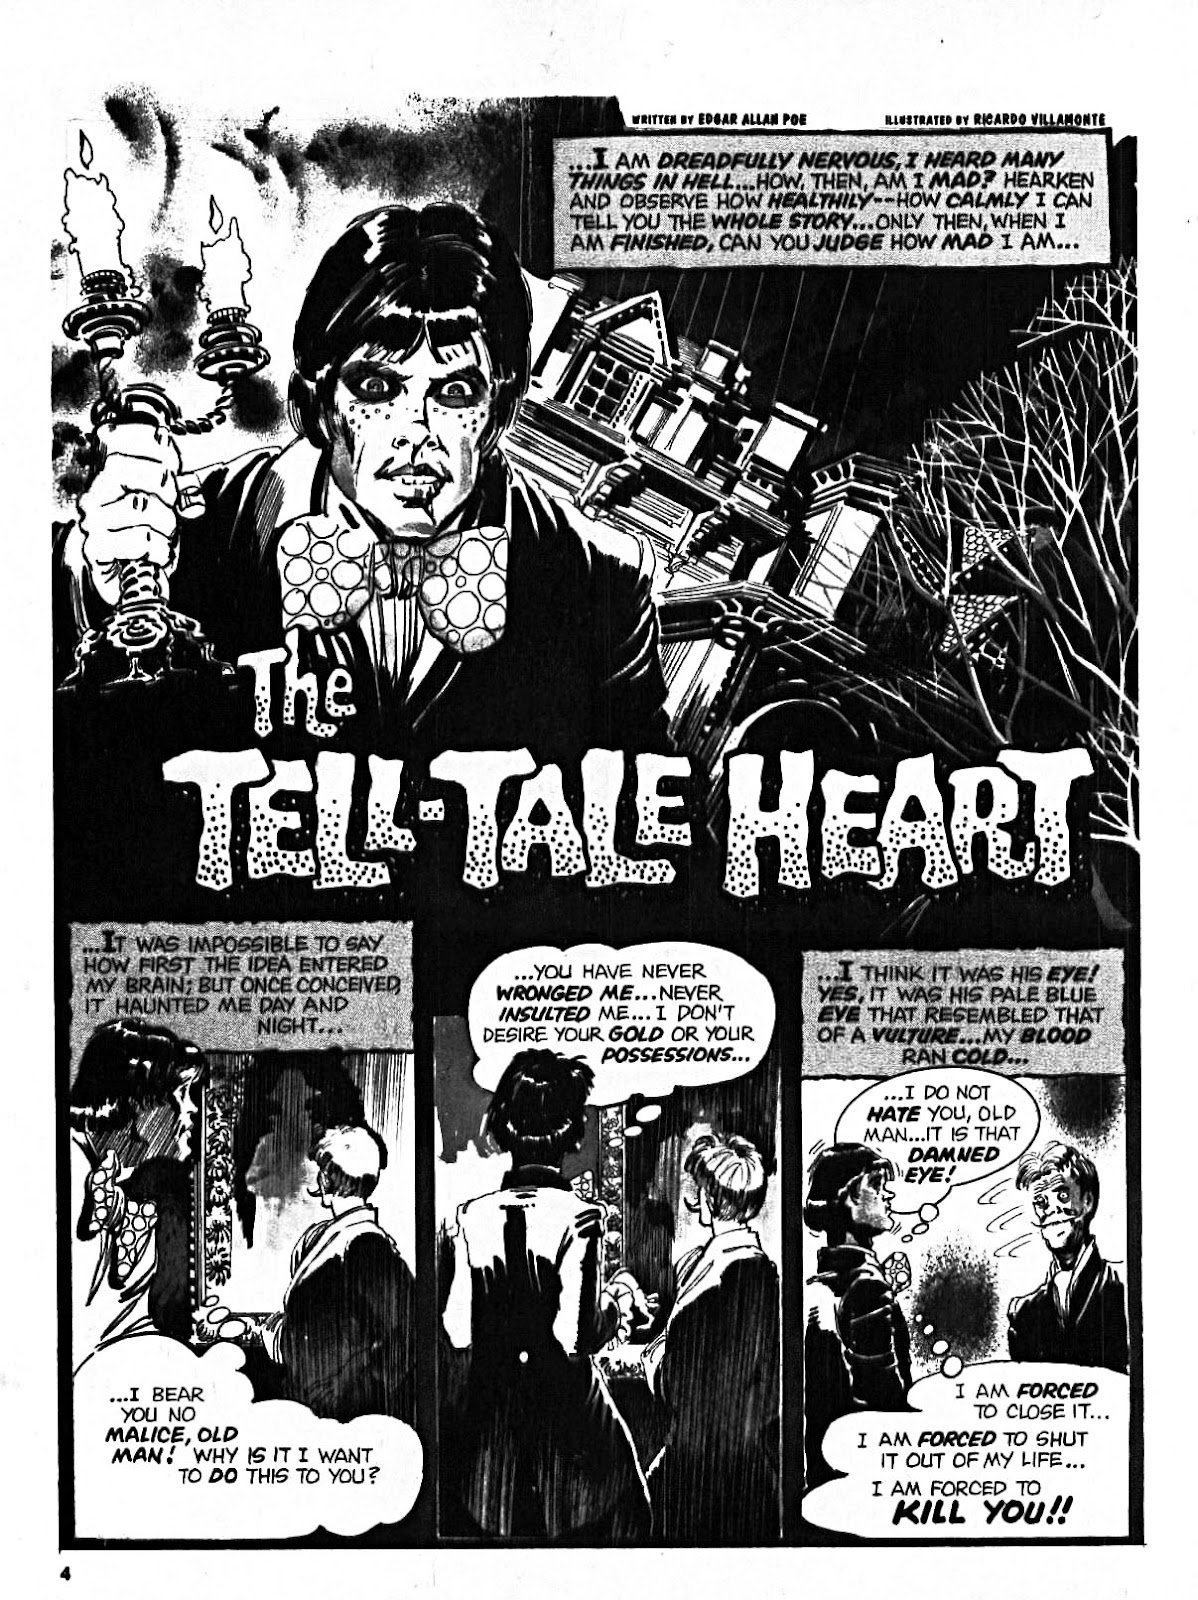 Scream (1973) issue 8 - Page 4